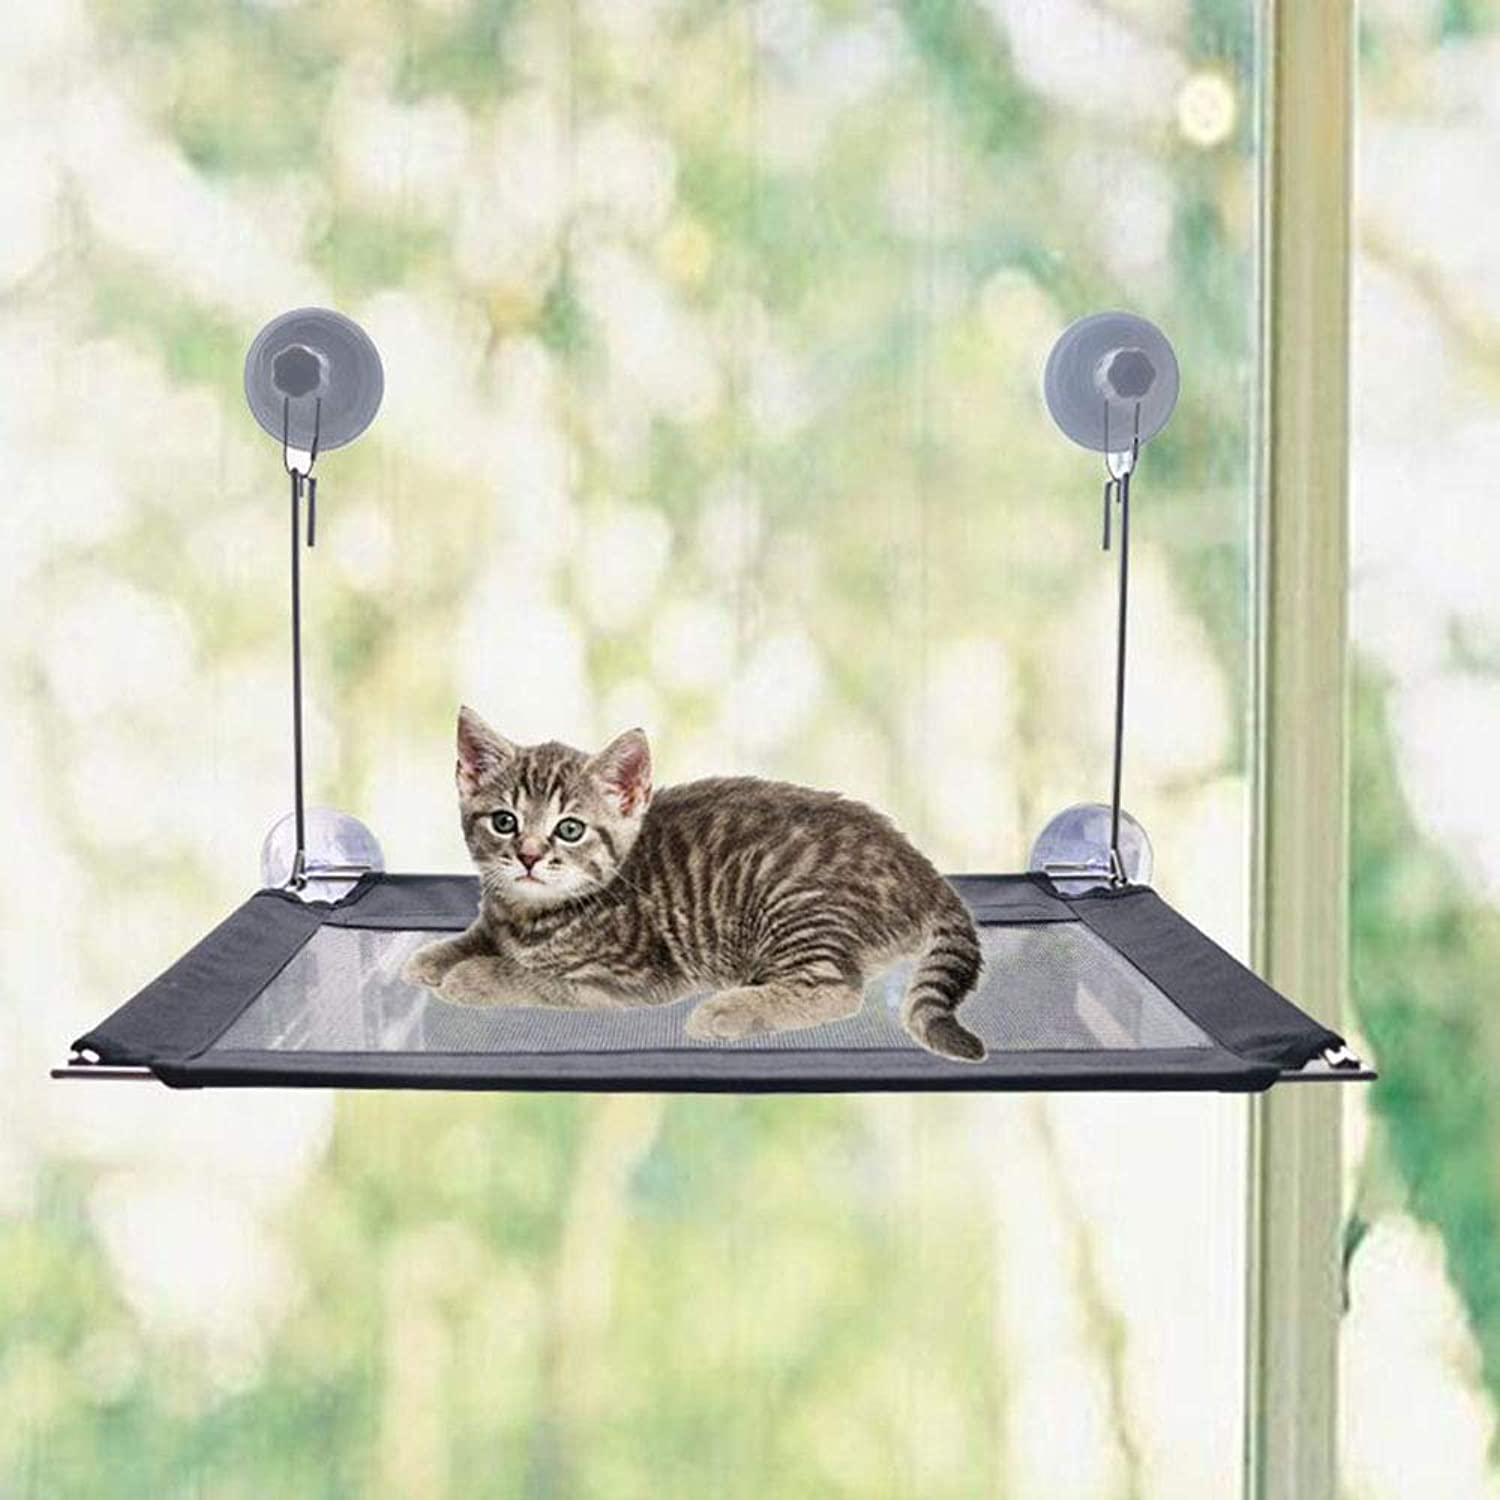 Cat Window Perch, Ampher Cat Hammock Window Mounted Cat Bed con Stainless Steel Frame 4 Heavy Duty Sucking Cups hold Up to 40lbs